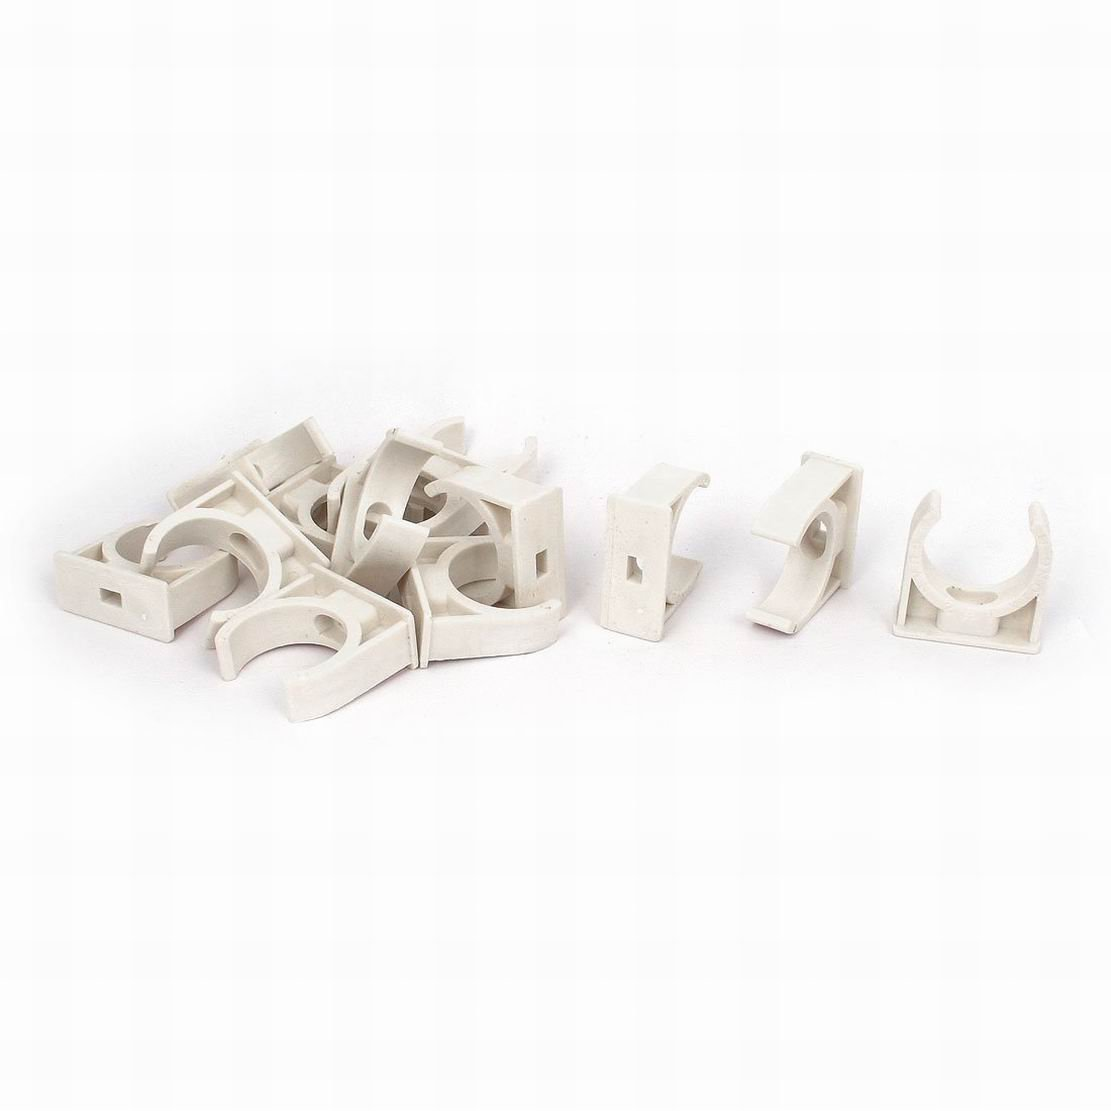 Uptell 32mm Dia Water Pipe Tube Hose Clamps Snap in Clips Fitting White 13pcs